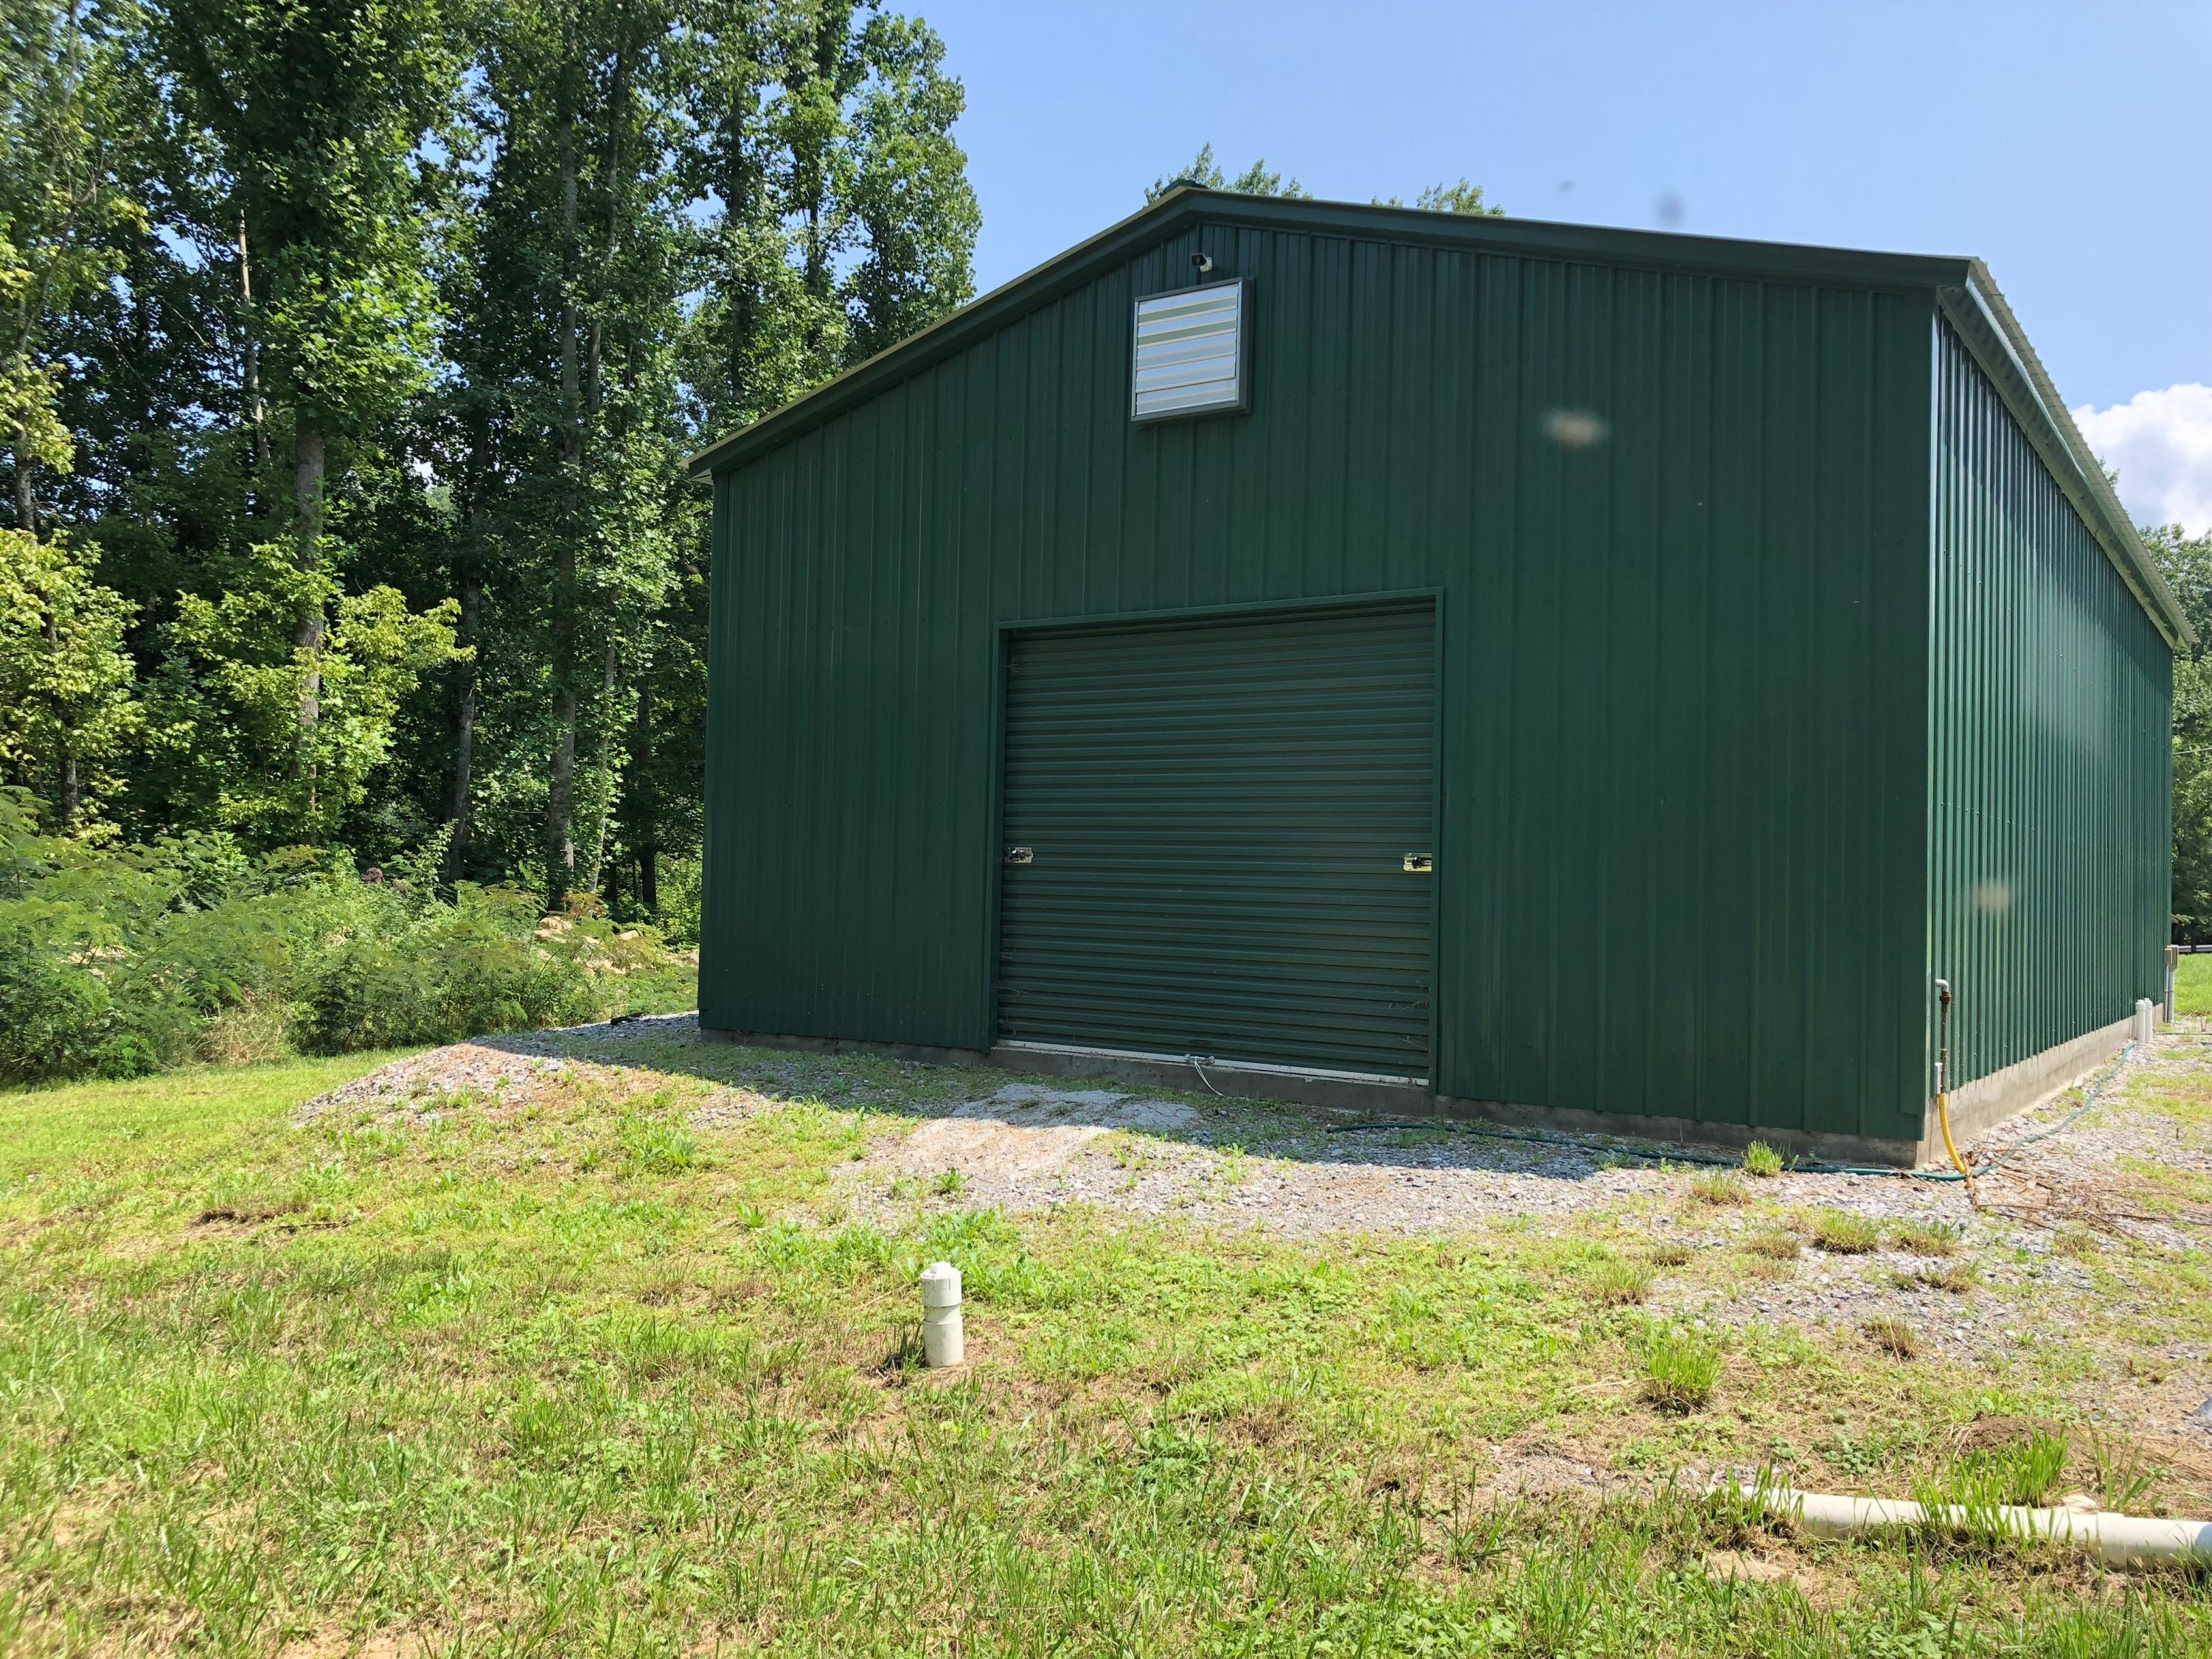 4639 Hwy 73 & Highway 73, Cosby, Tennessee 37722, ,Commercial,For Sale,4639 Hwy 73 & Highway 73,1057421